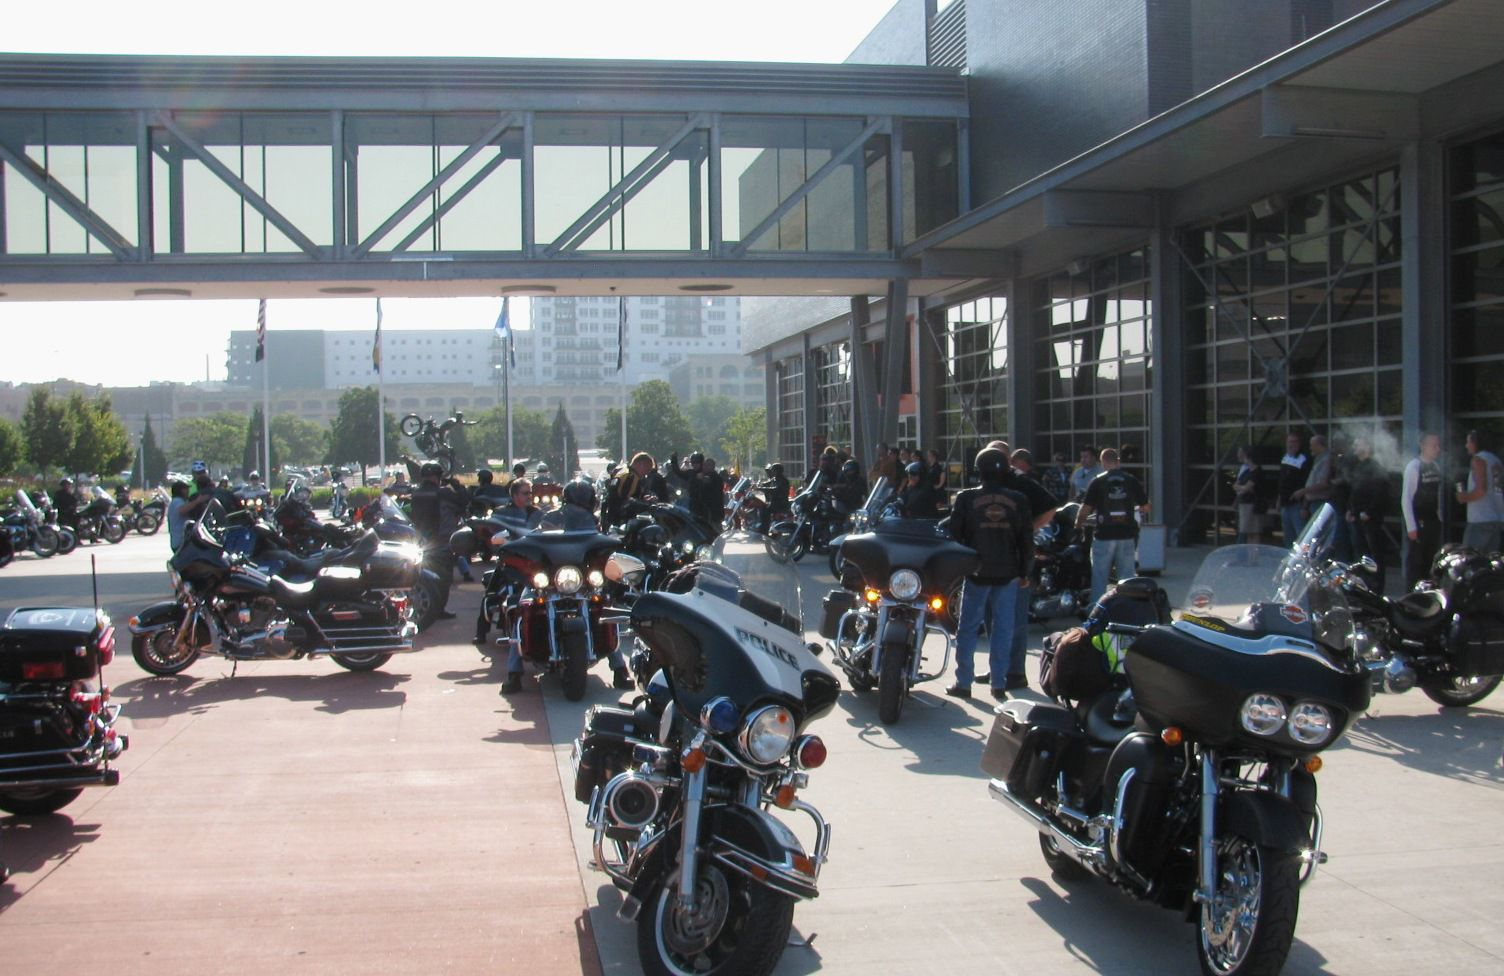 Riders assemble at HD Museum for start of ride to Sturgis 2010